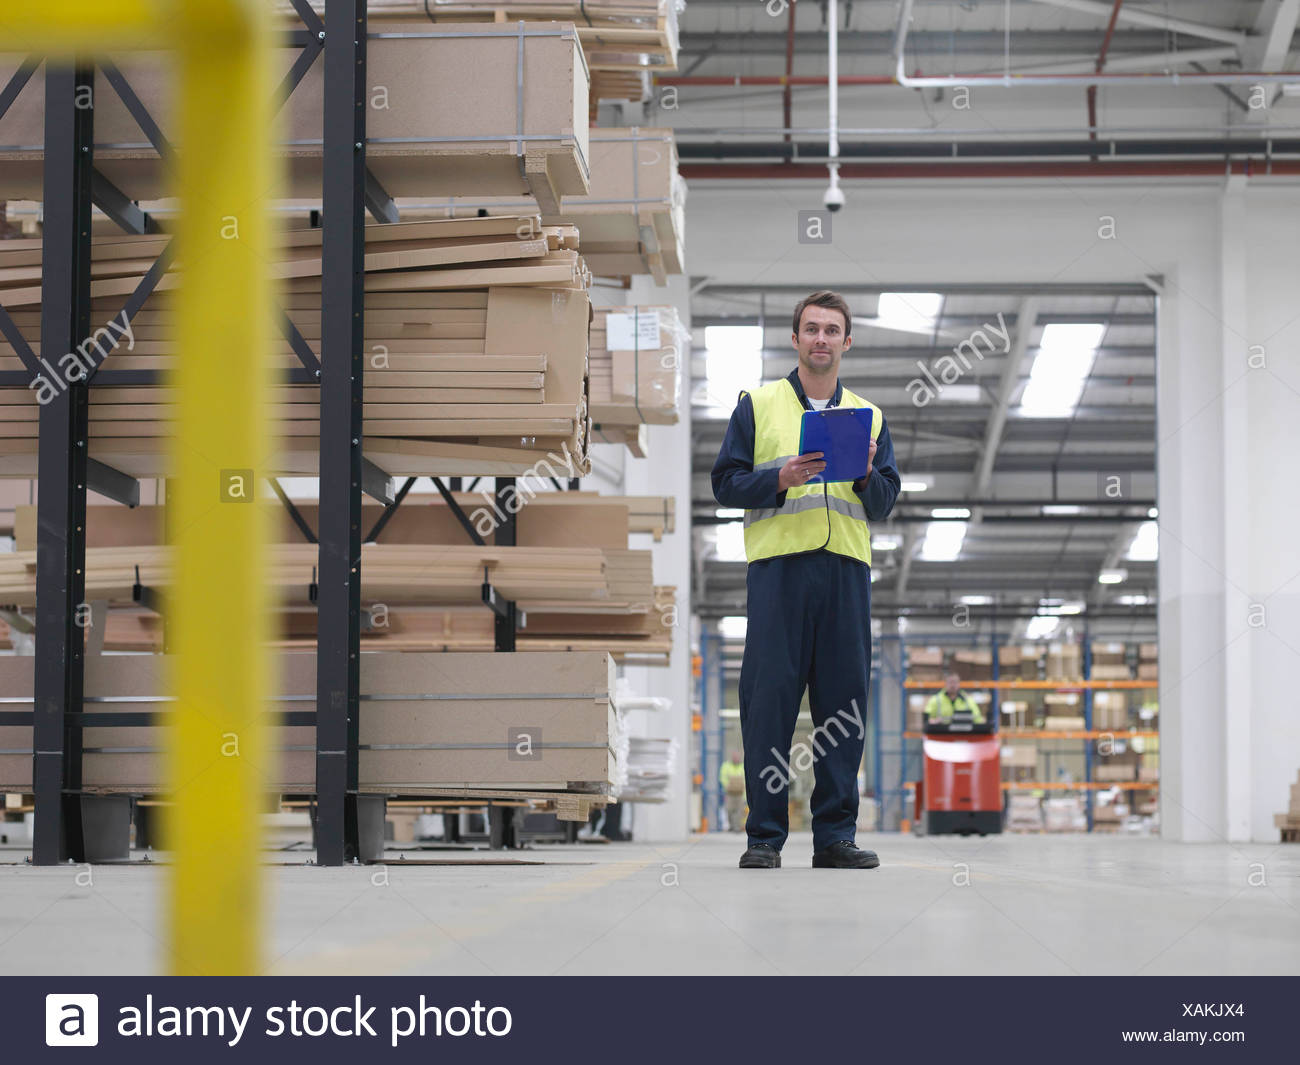 Worker With Clipboard In Warehouse Stock Photo